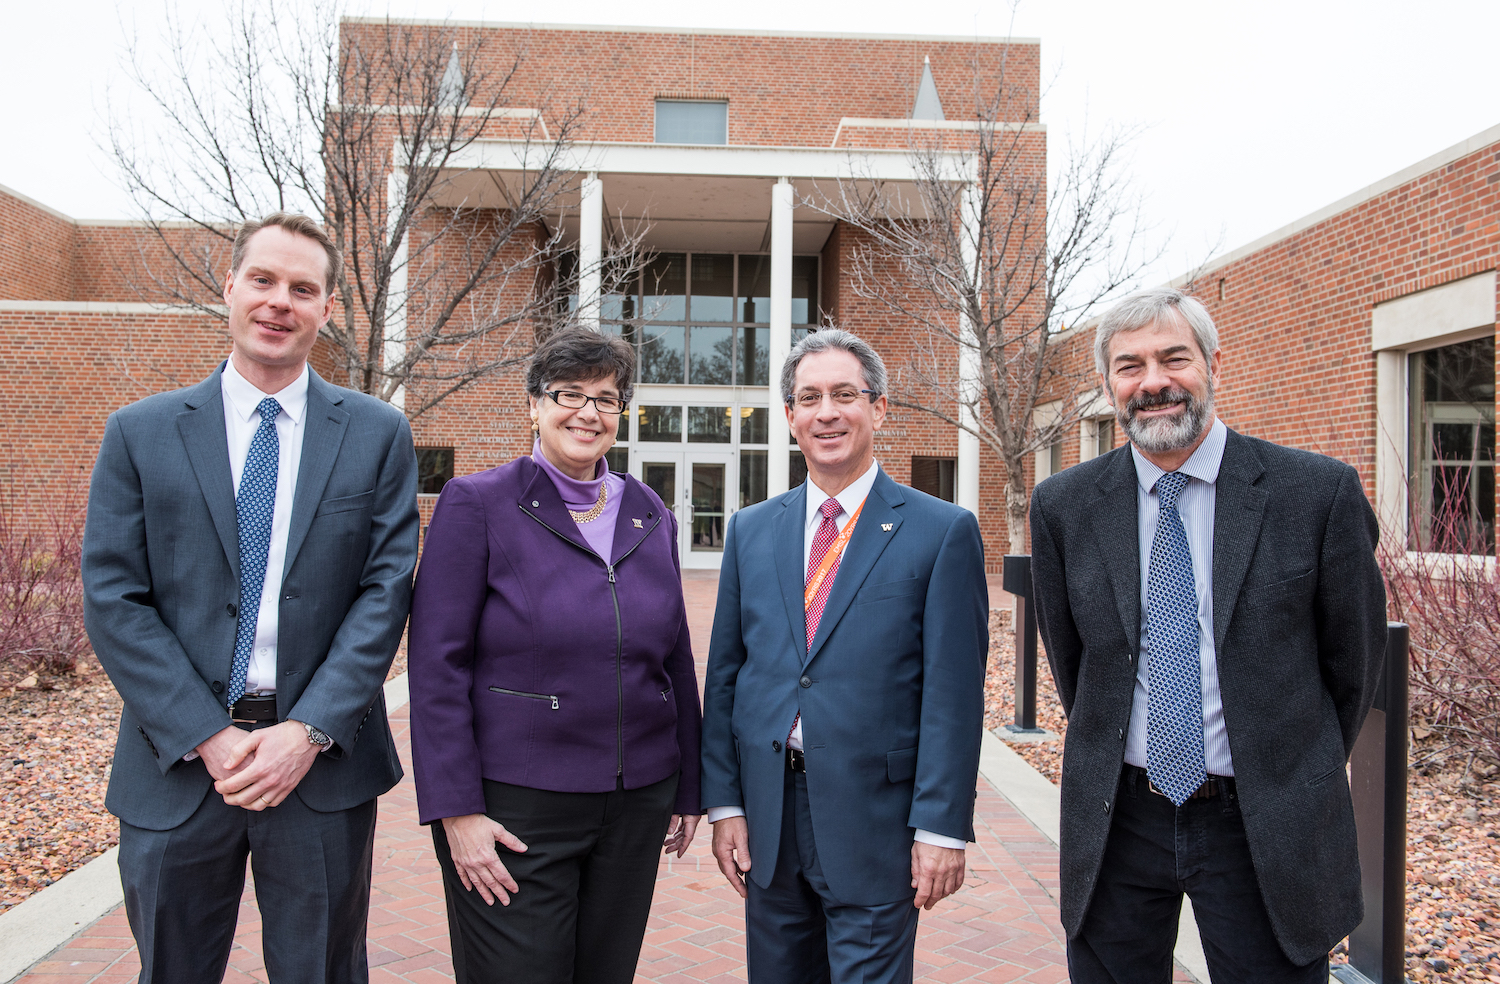 A woman in a purple jacket and sweater and three men in suits pose in front of a brick building.